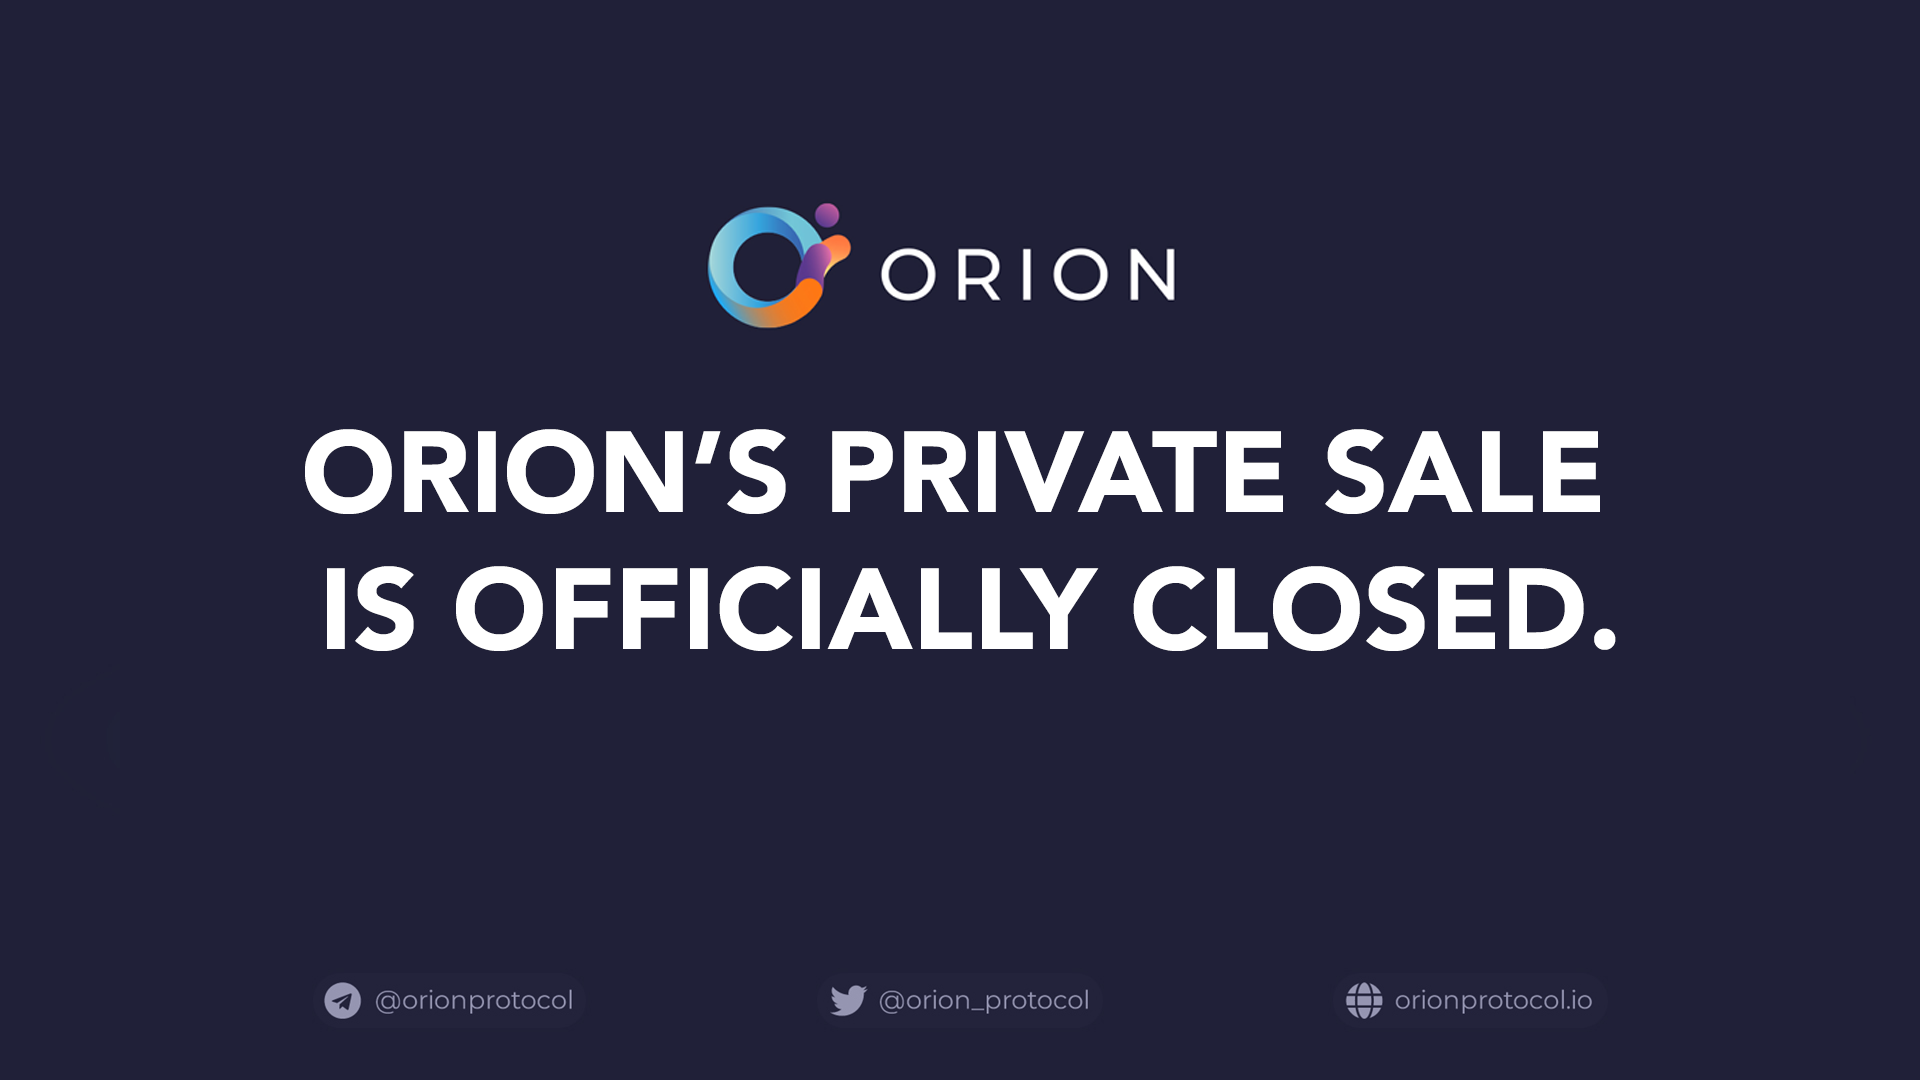 Orion Protocol's private sale is officially closed.